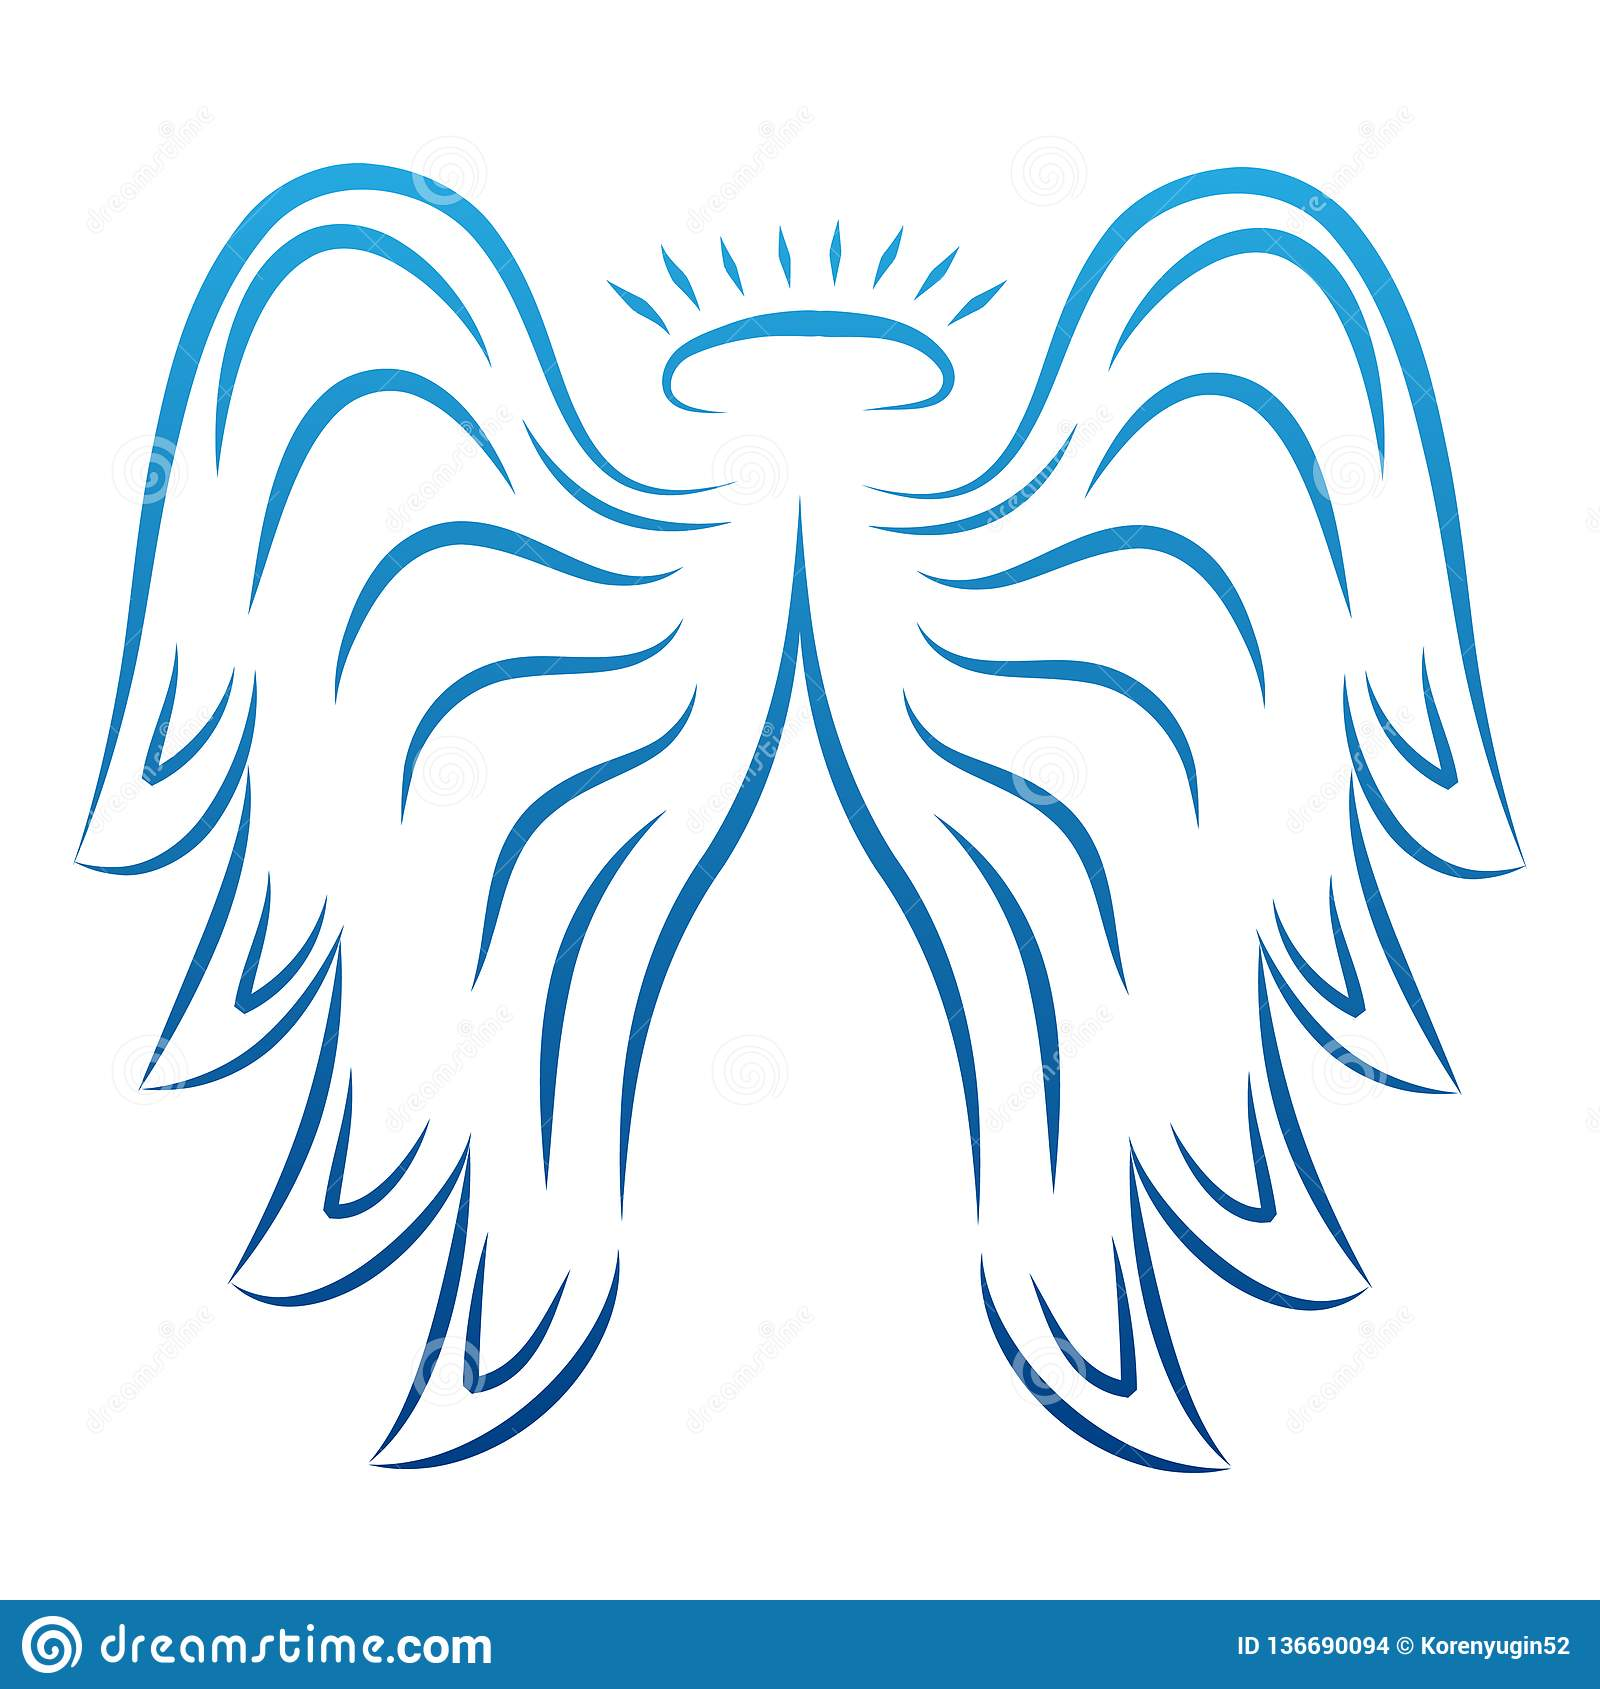 5161a6b2b Angel wings drawing vector illustration. Winged angelic tattoo icons. Wing  feather with halo,